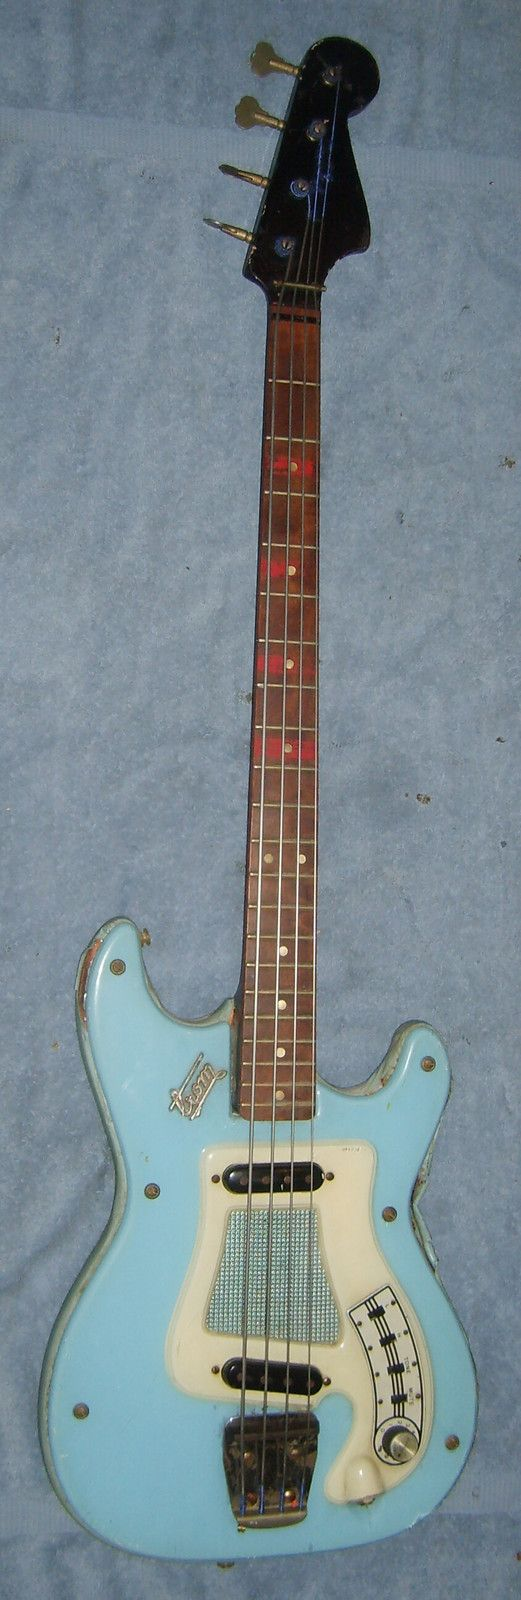 Vintage Early '60s Hagstrom BLUE Bass Guitar ! Round Pole PUs - VERY COOL! | eBay